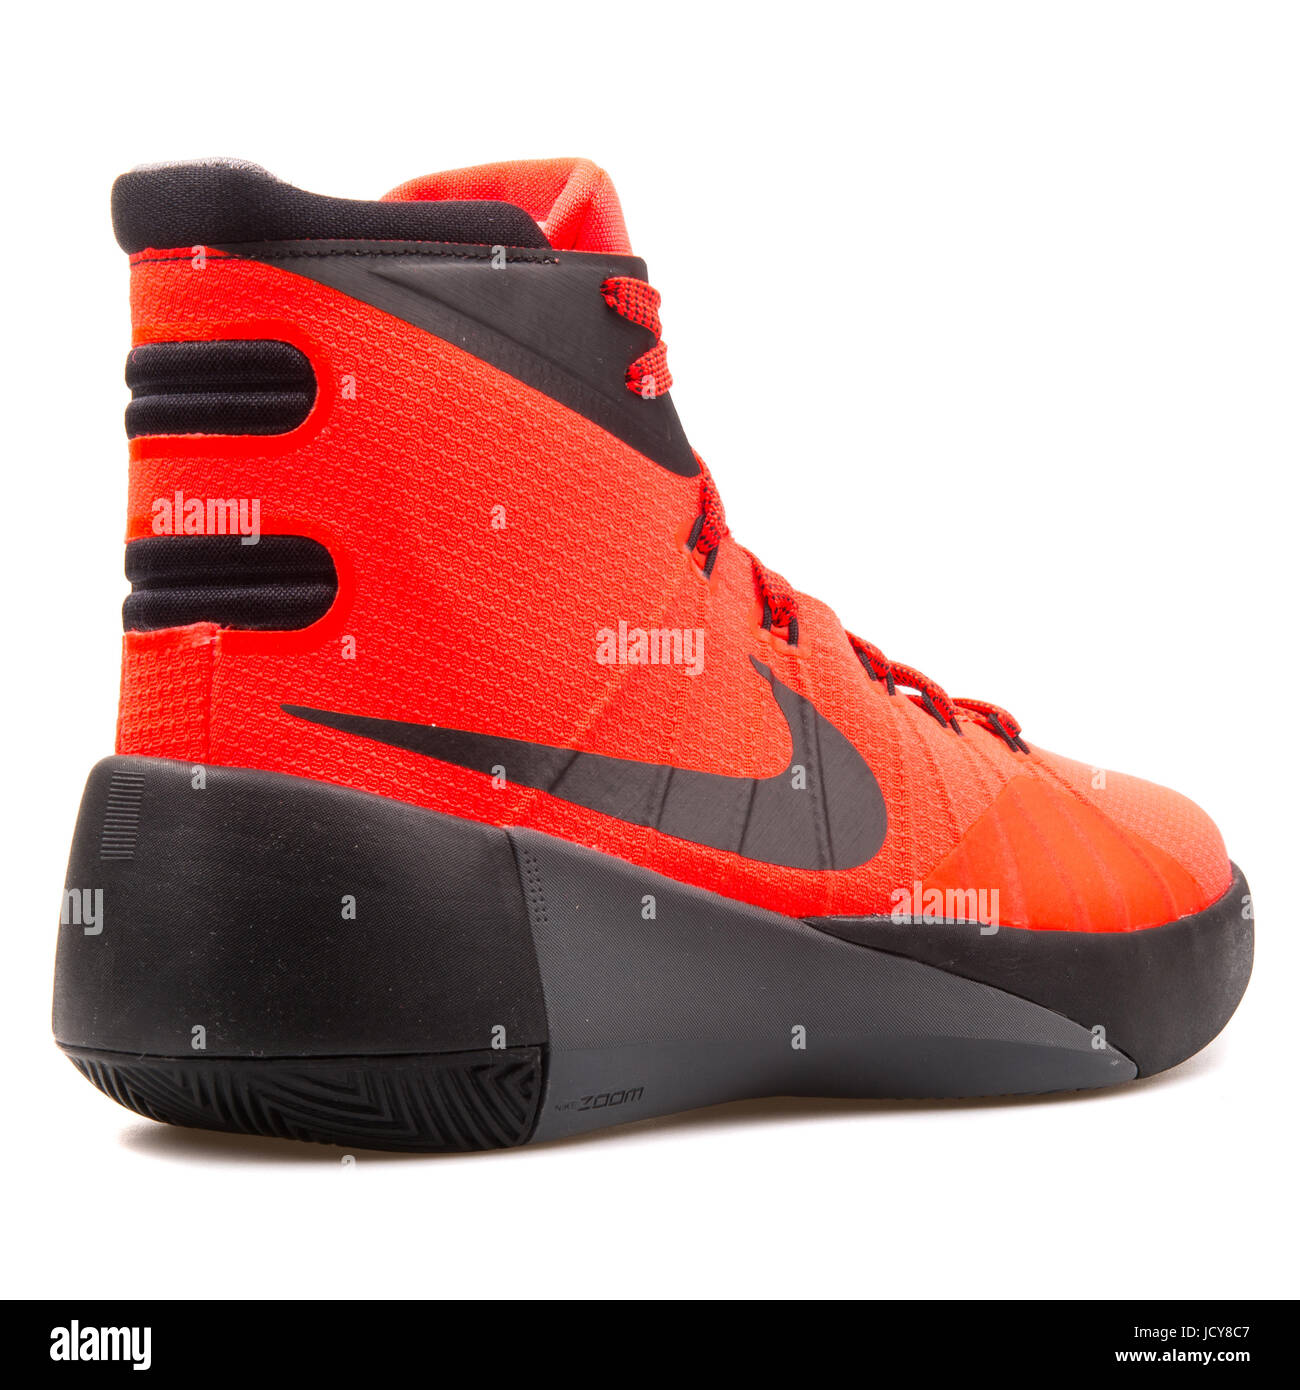 2893082485c2b2 ... authentic nike hyperdunk 2015 gs bright crimson black and grey youths  basketball shoes 759974 600 6599a